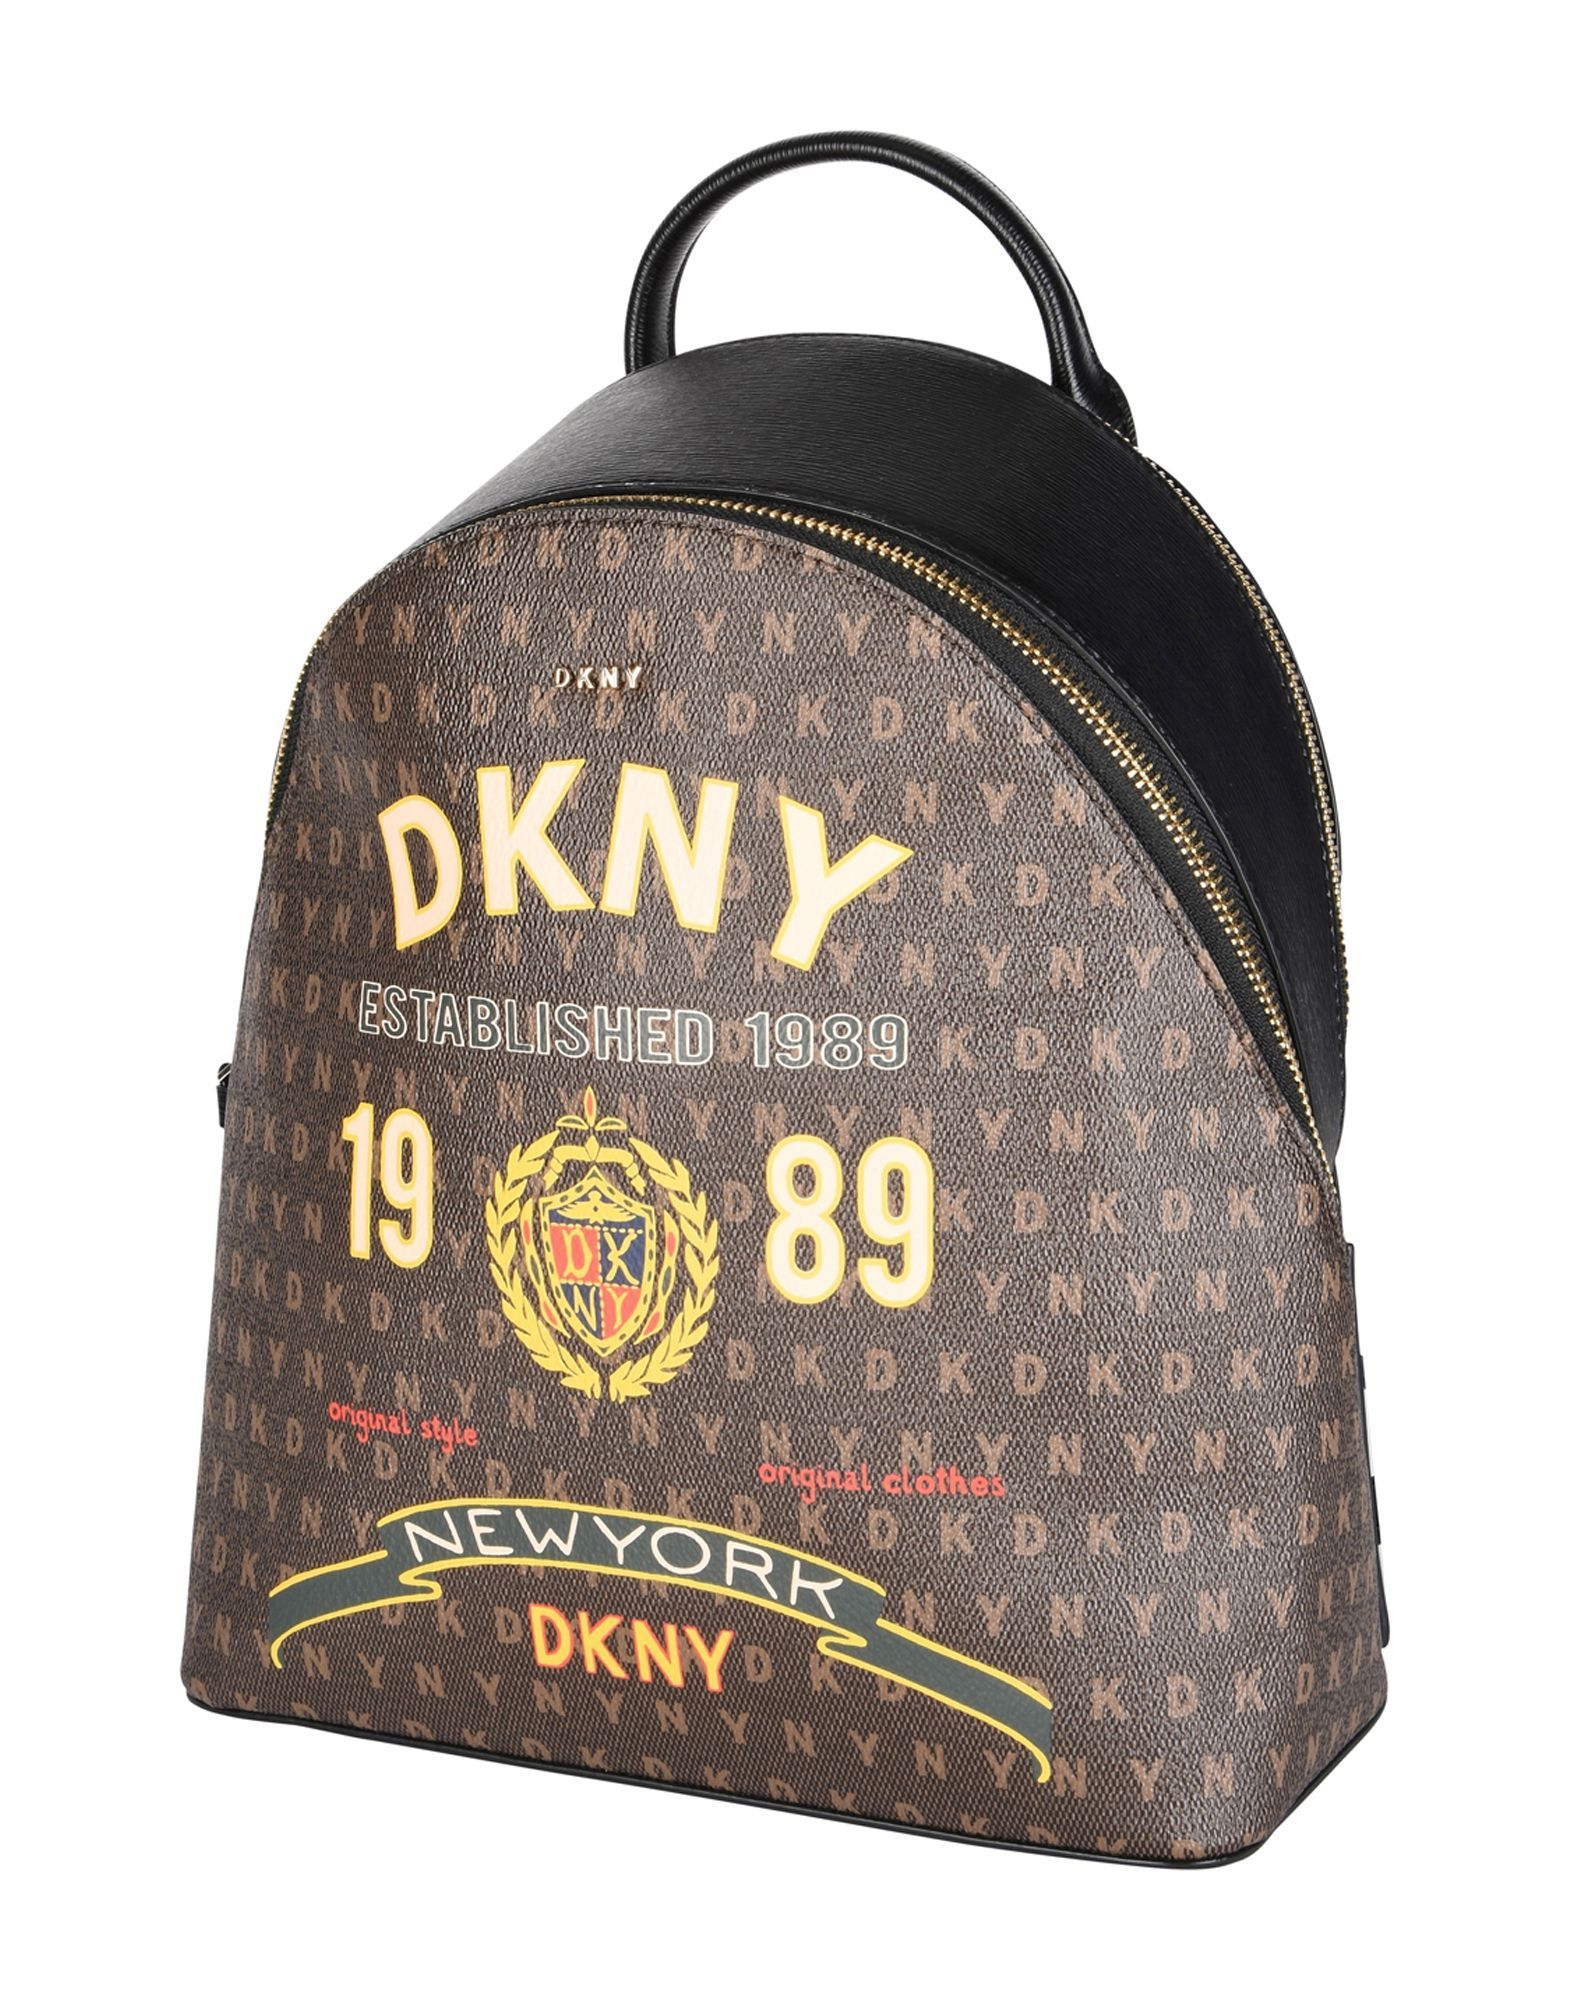 914138e7876 Dkny Backpack   Fanny Pack - Women Dkny Backpacks   Fanny Packs online on  YOOX United States - 45381994XL. Find this Pin and more on Dope Designer  Bags ...